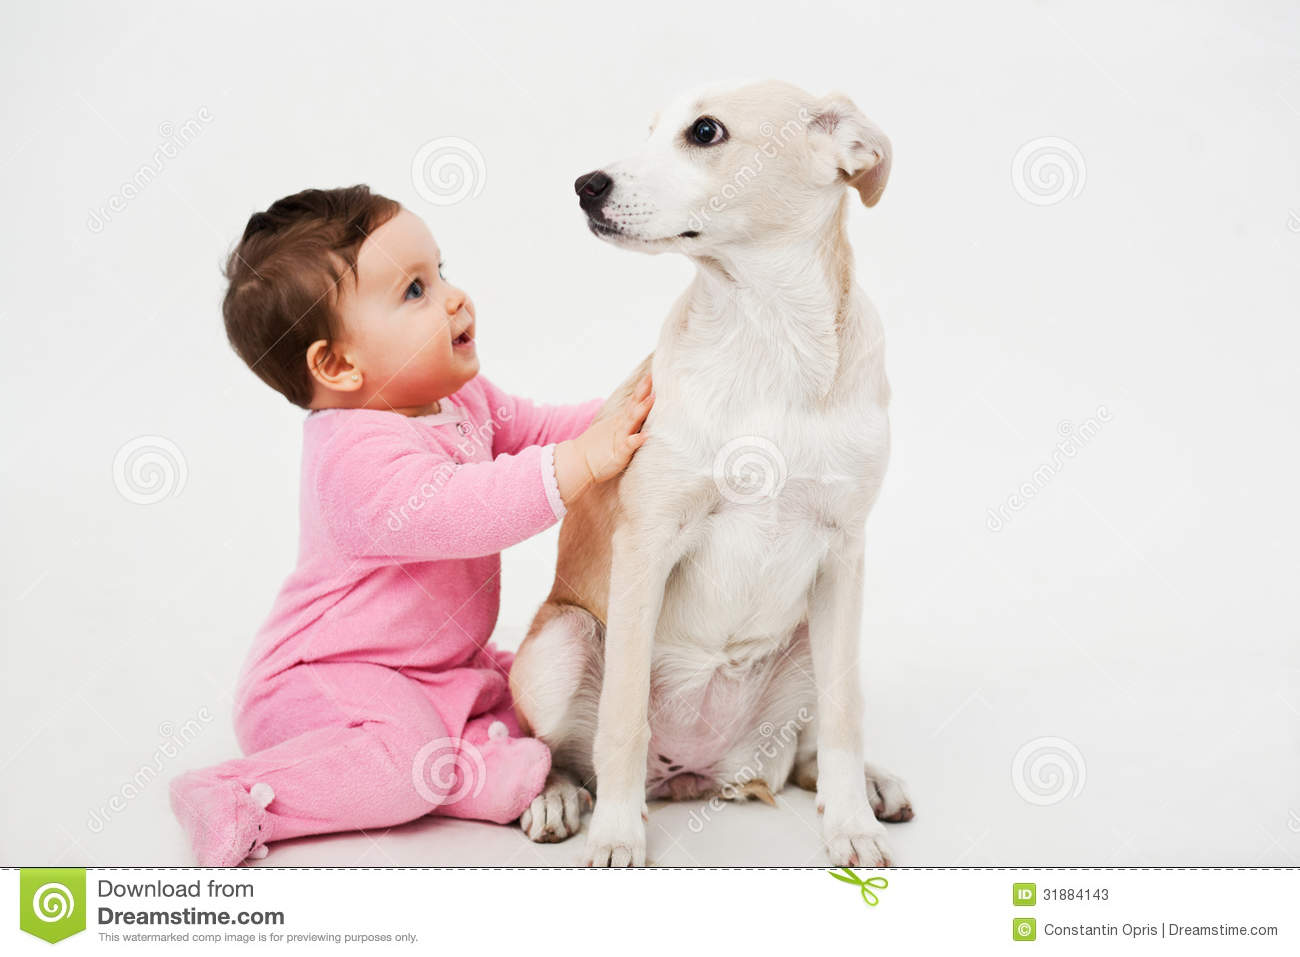 Baby And Dog Pet Stock Photos - Image: 31884143